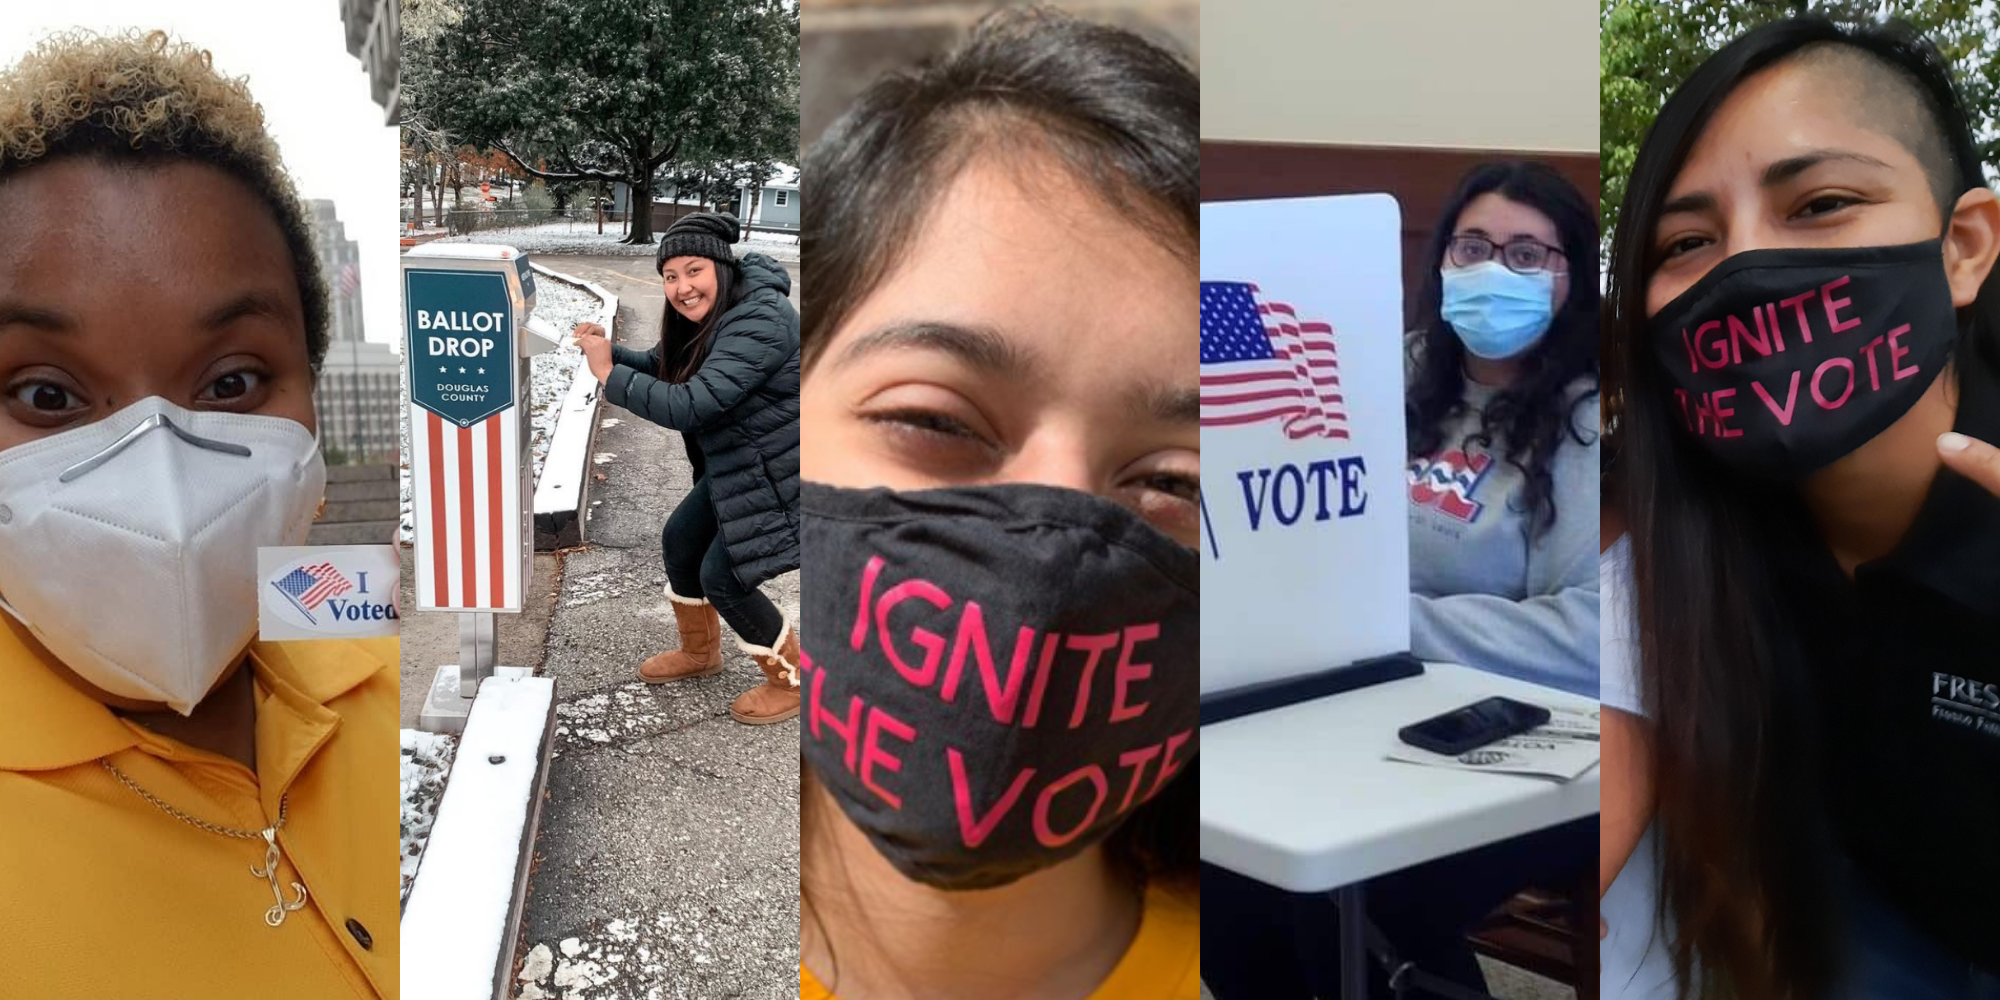 My vote doesn't matter: falsehoods about voting